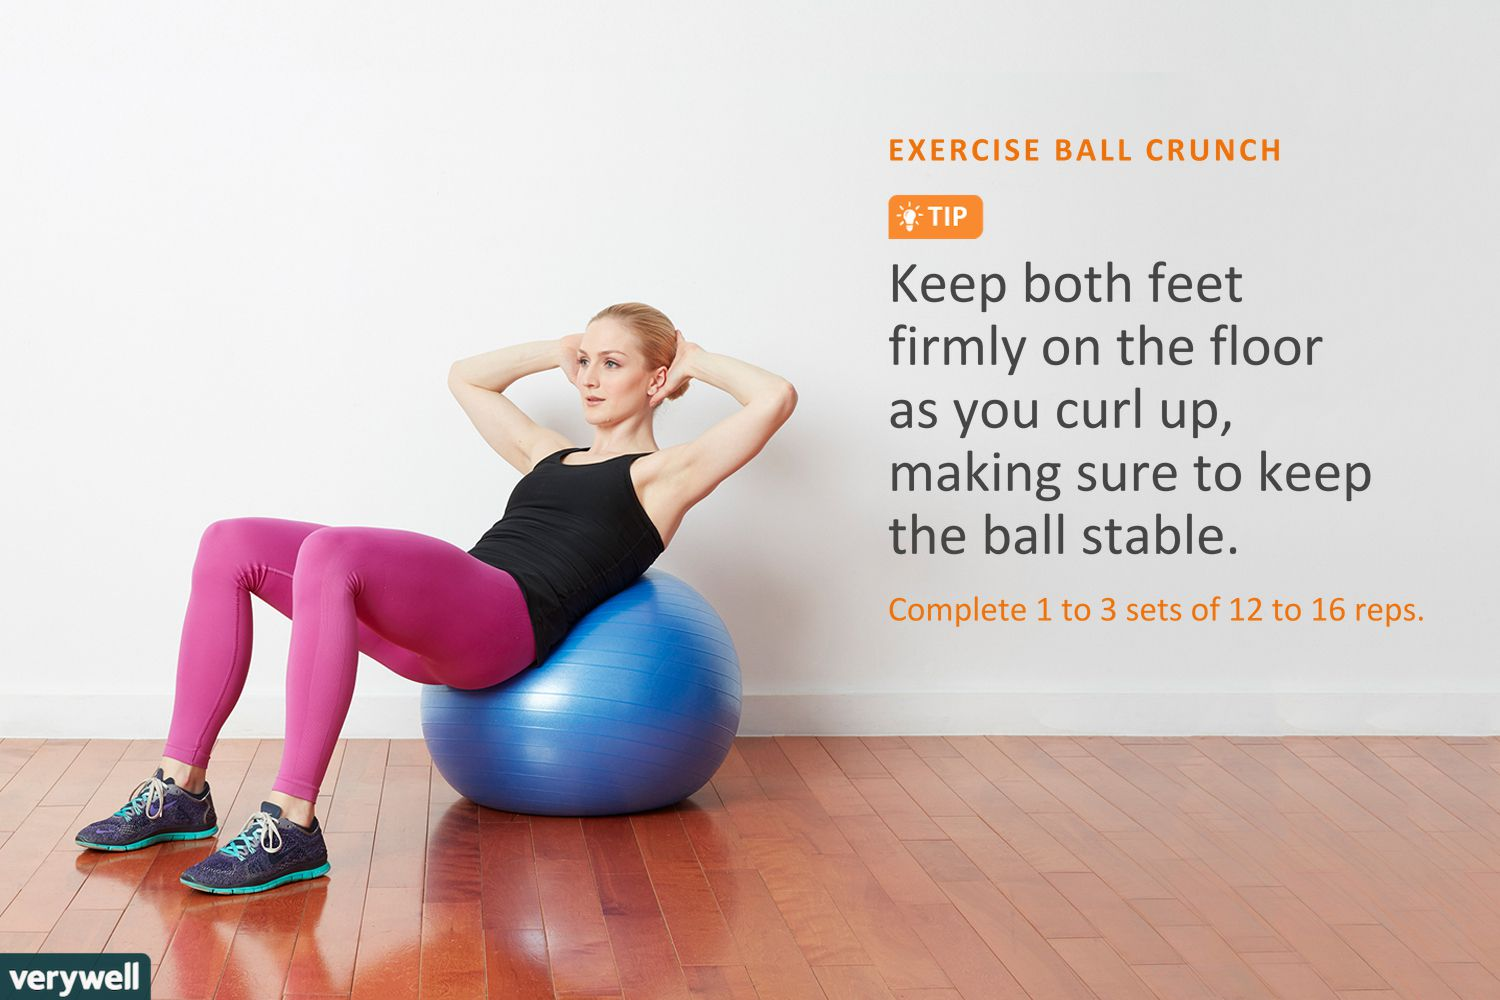 a44058bac woman doing exercise ball crunches